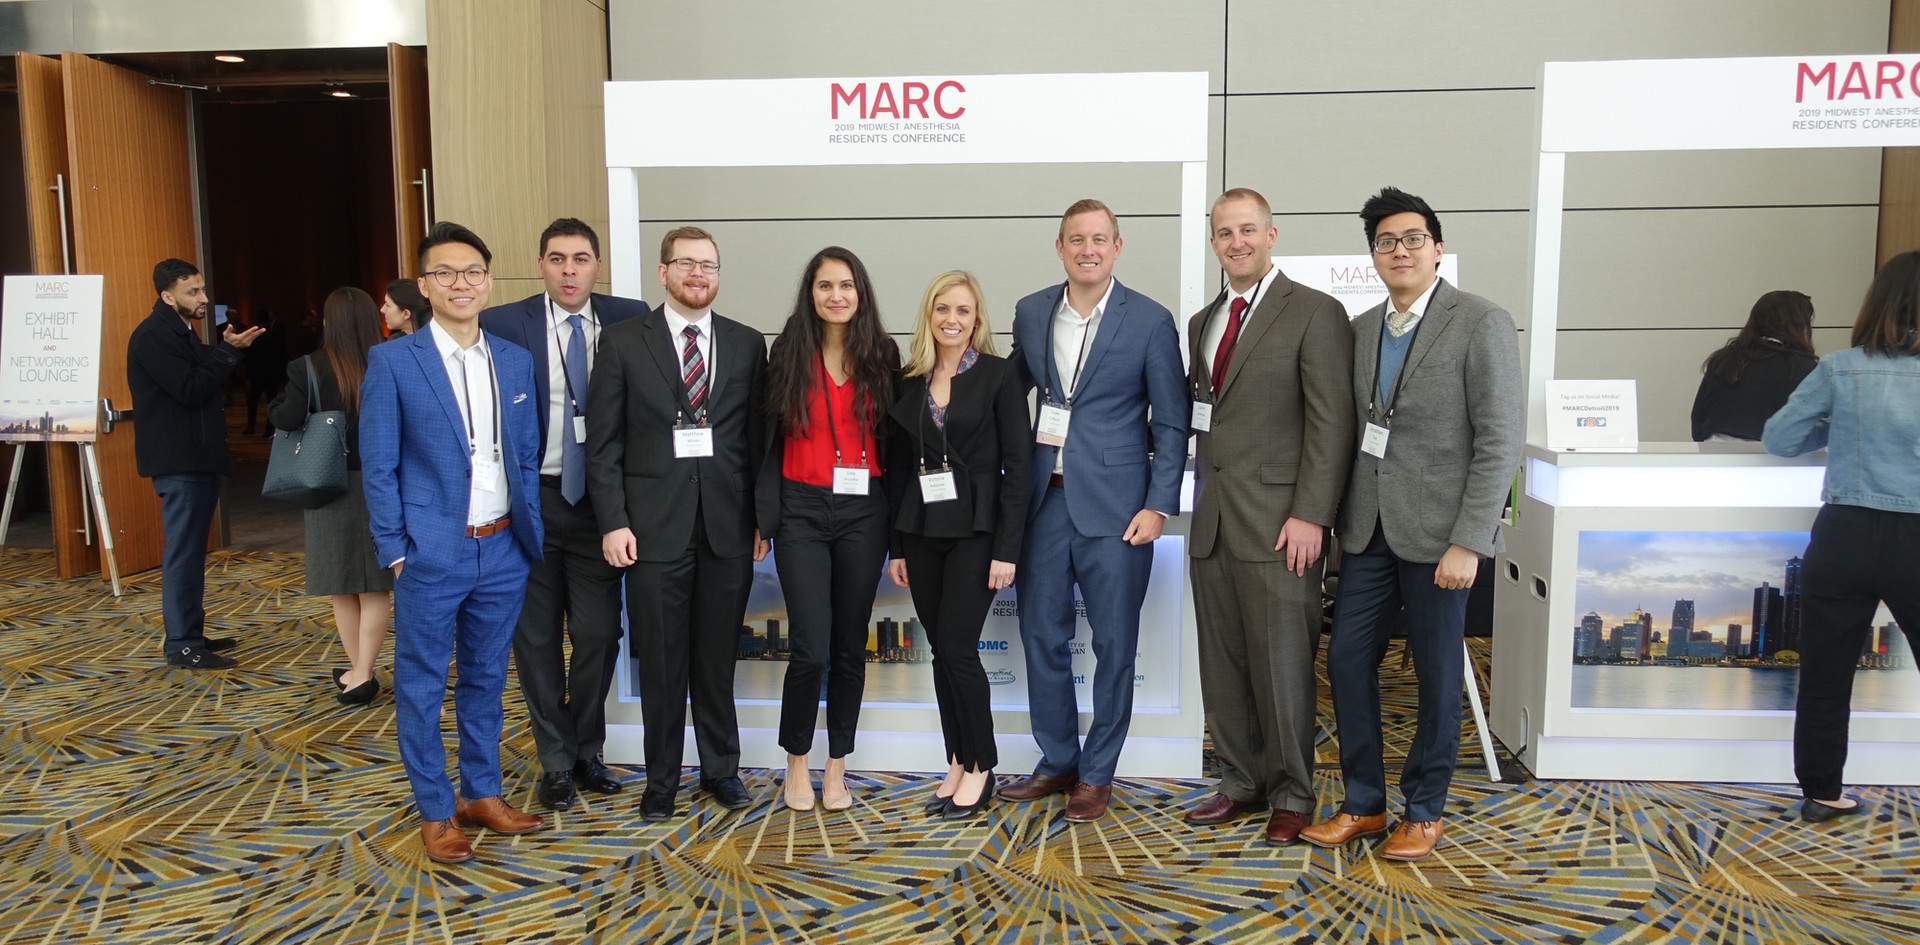 Our residents participating in MARC conference. Each year we allocate protected education time for CA-1s to participate in MARC.